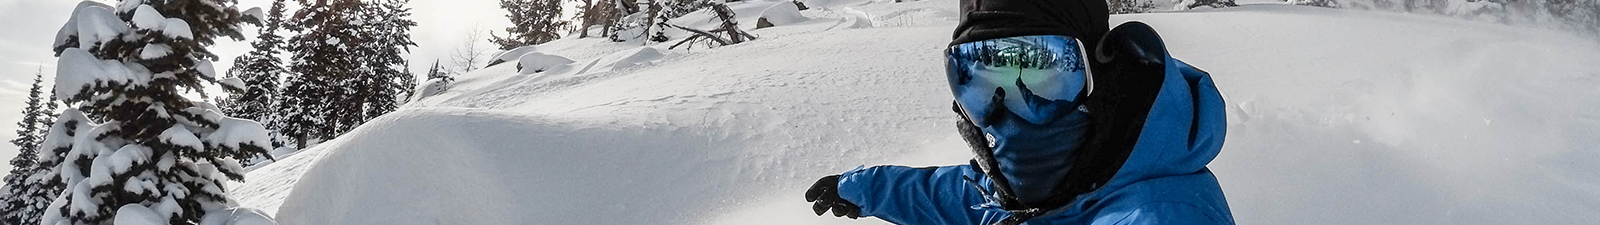 Banner-Sports-Hiver